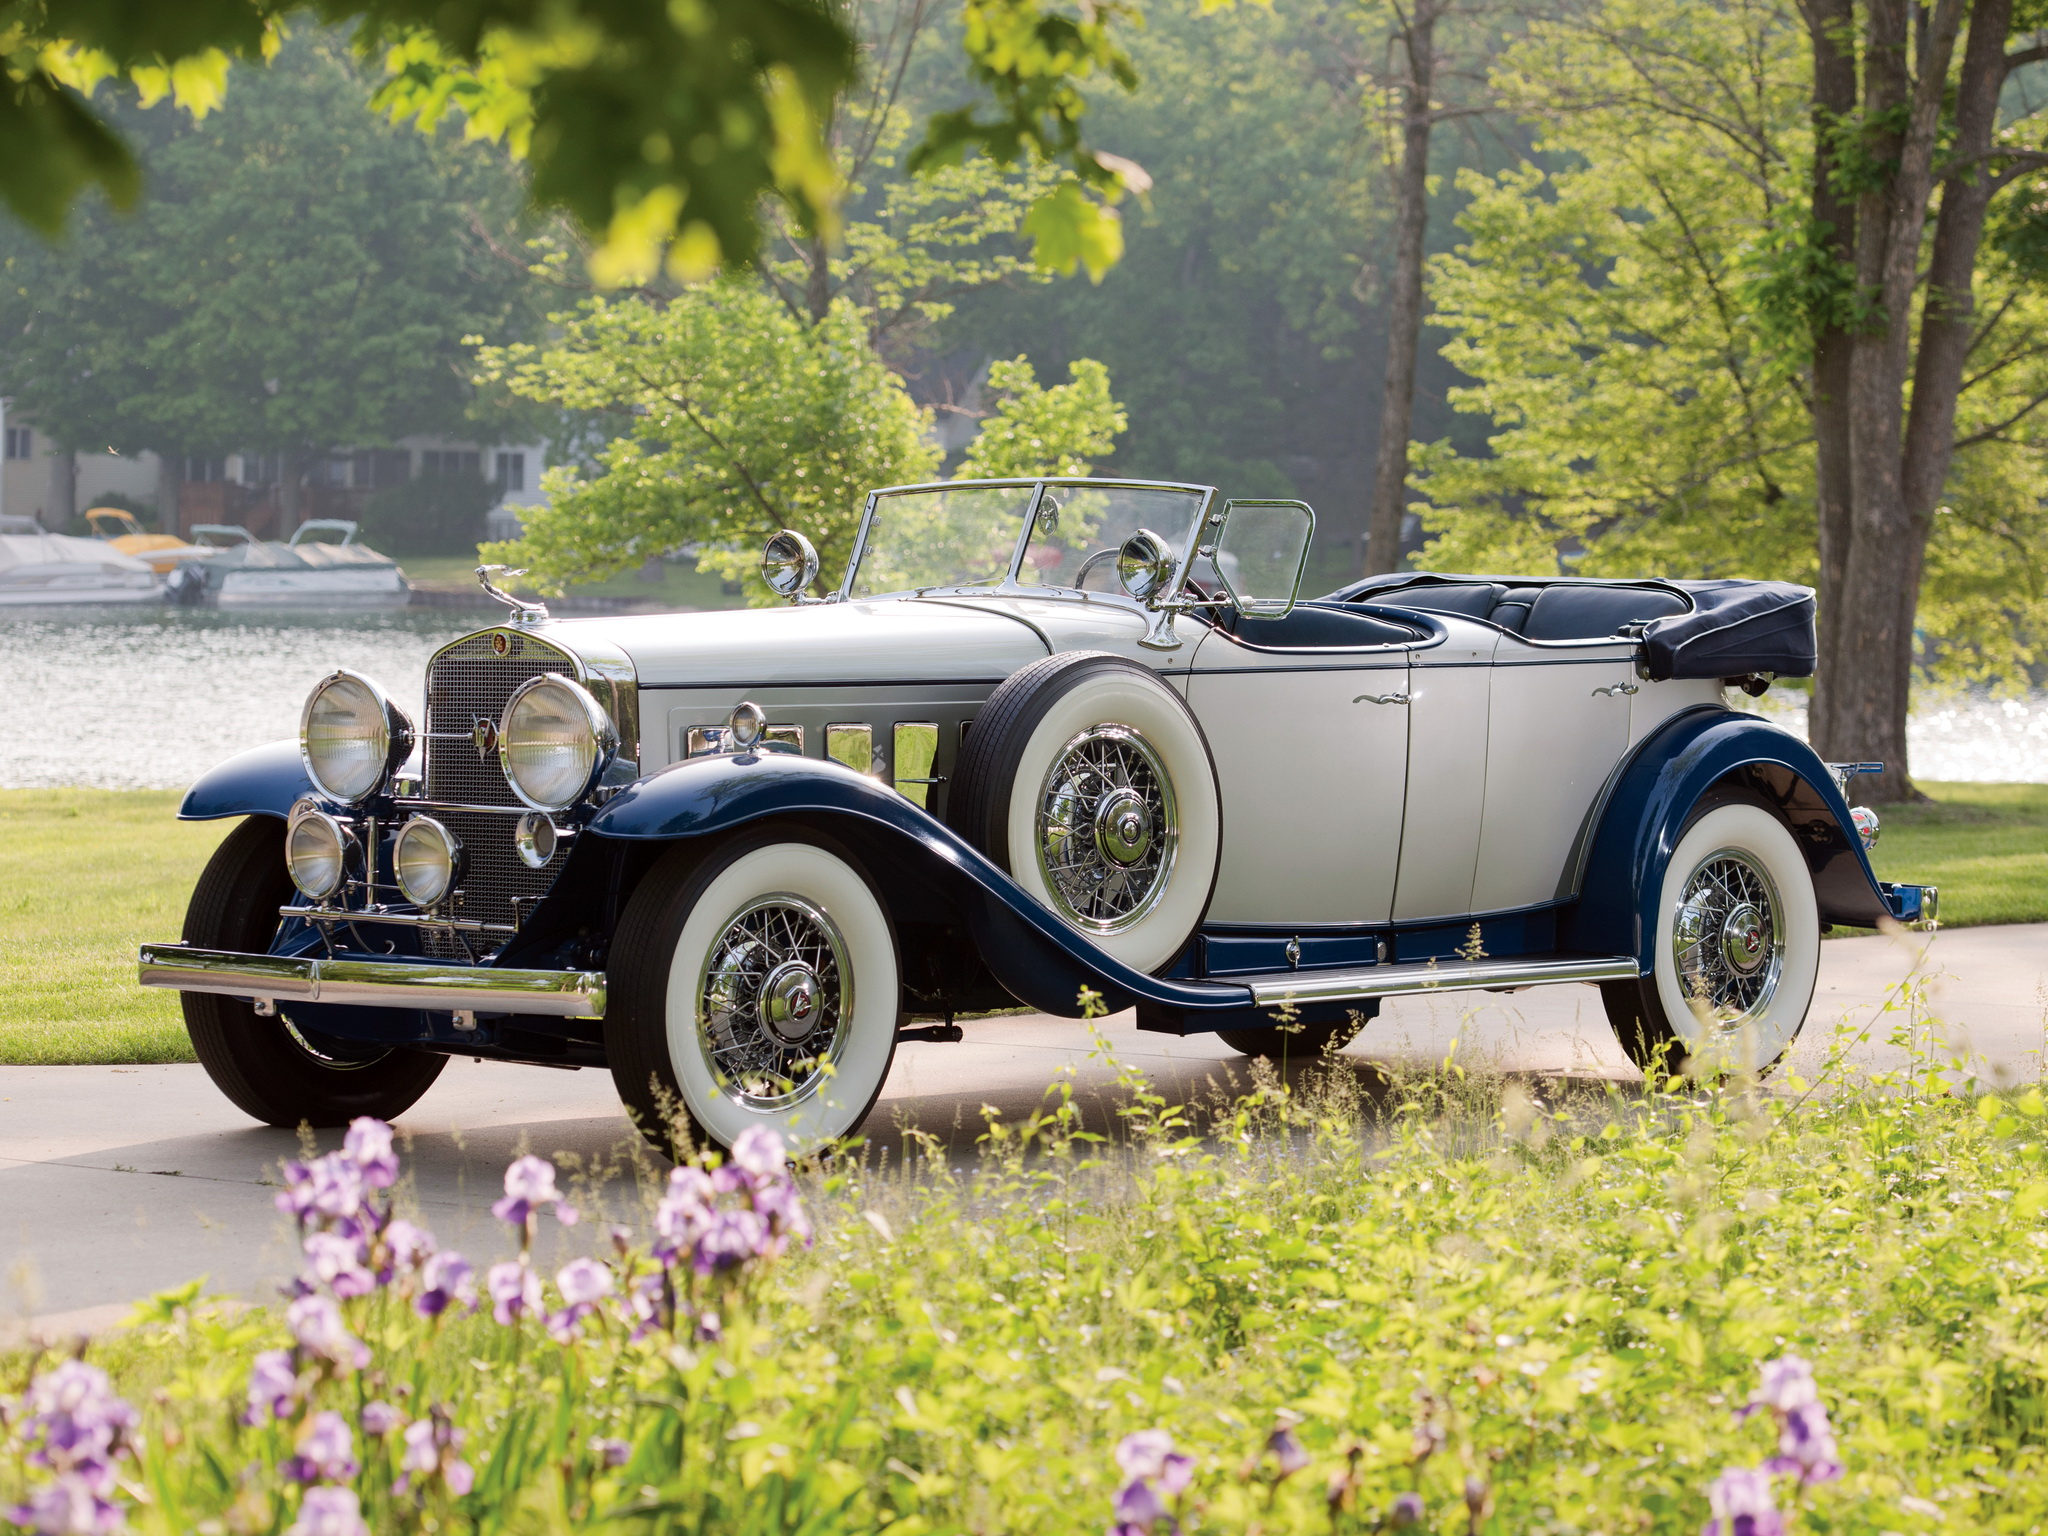 1930 Cadillac Model 452 V16 High Quality Background on Wallpapers Vista